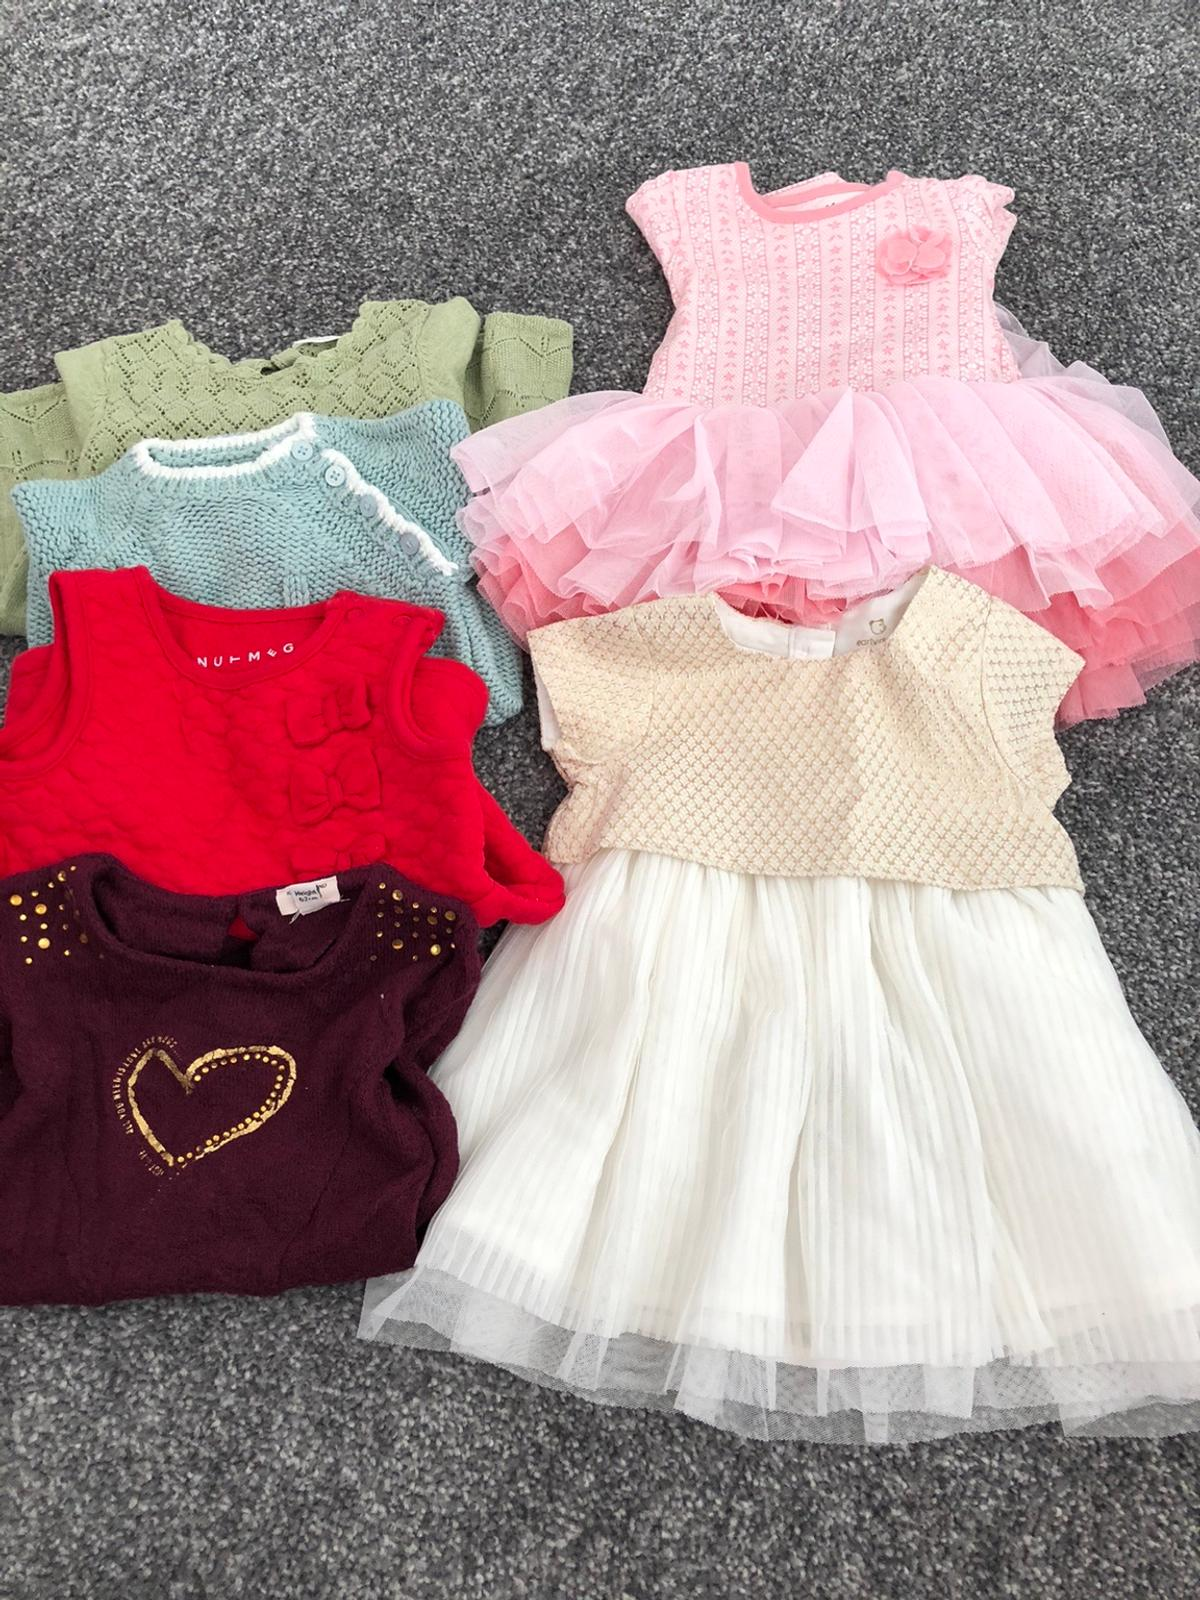 21 items Dresses Tops/jumpers Trousers and top sets Cardigans Baby grows  Riverisland,next,marks and Spencer's All excellent condition